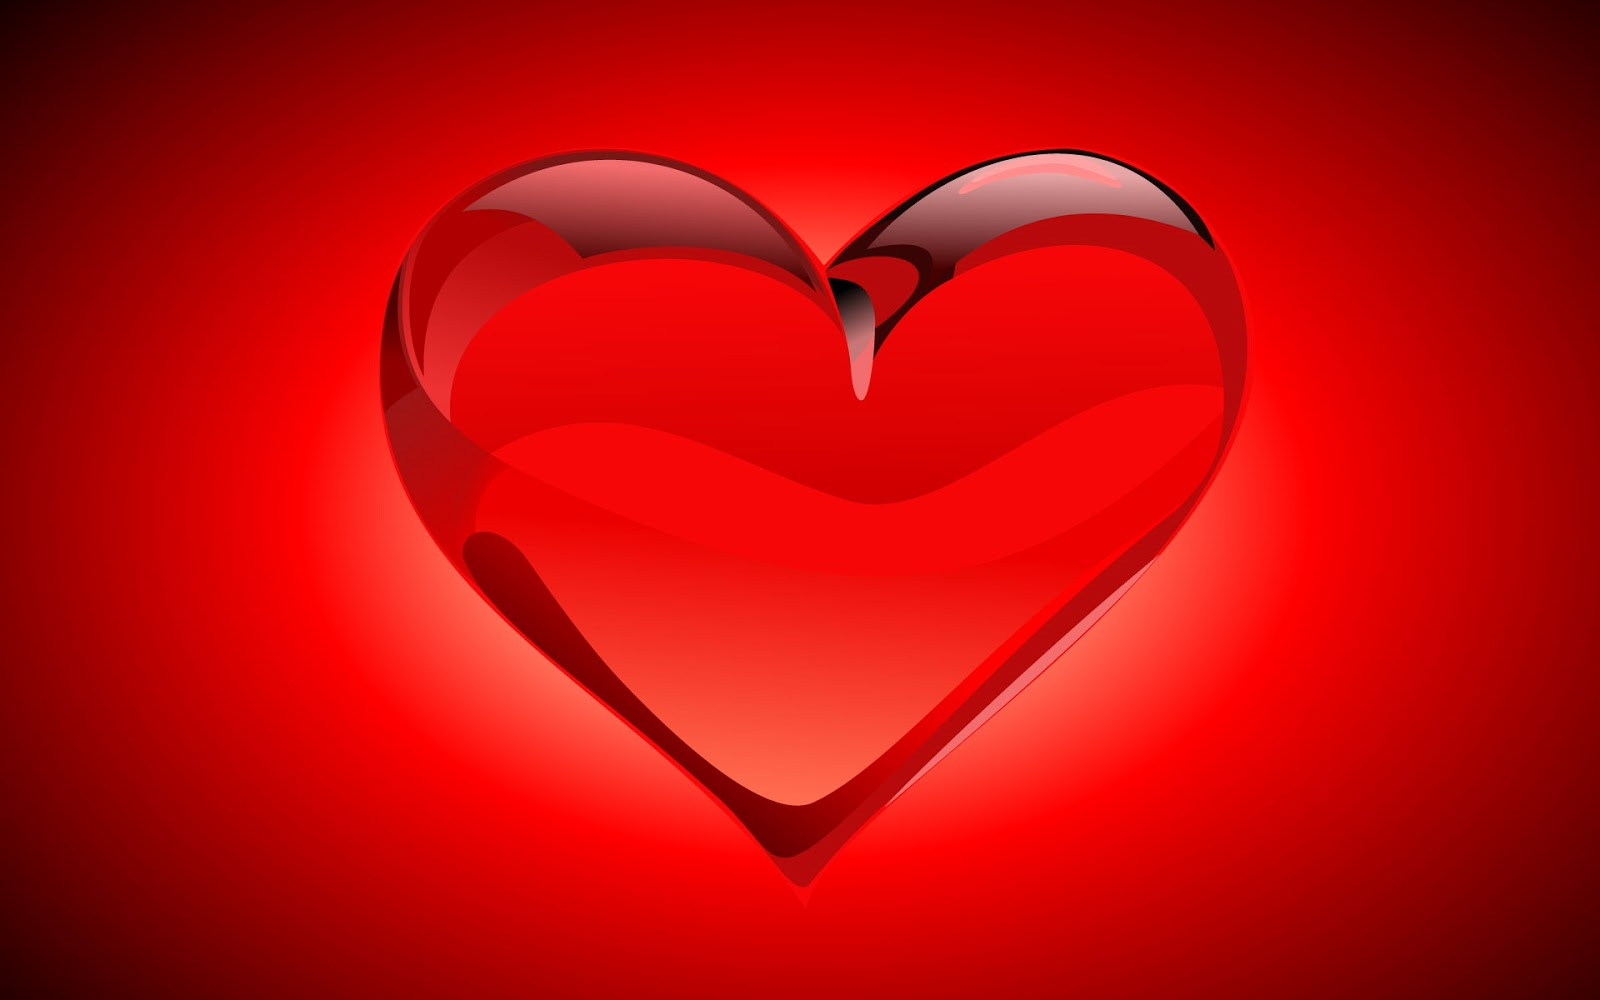 red heart wallpaper, heart wallpapers